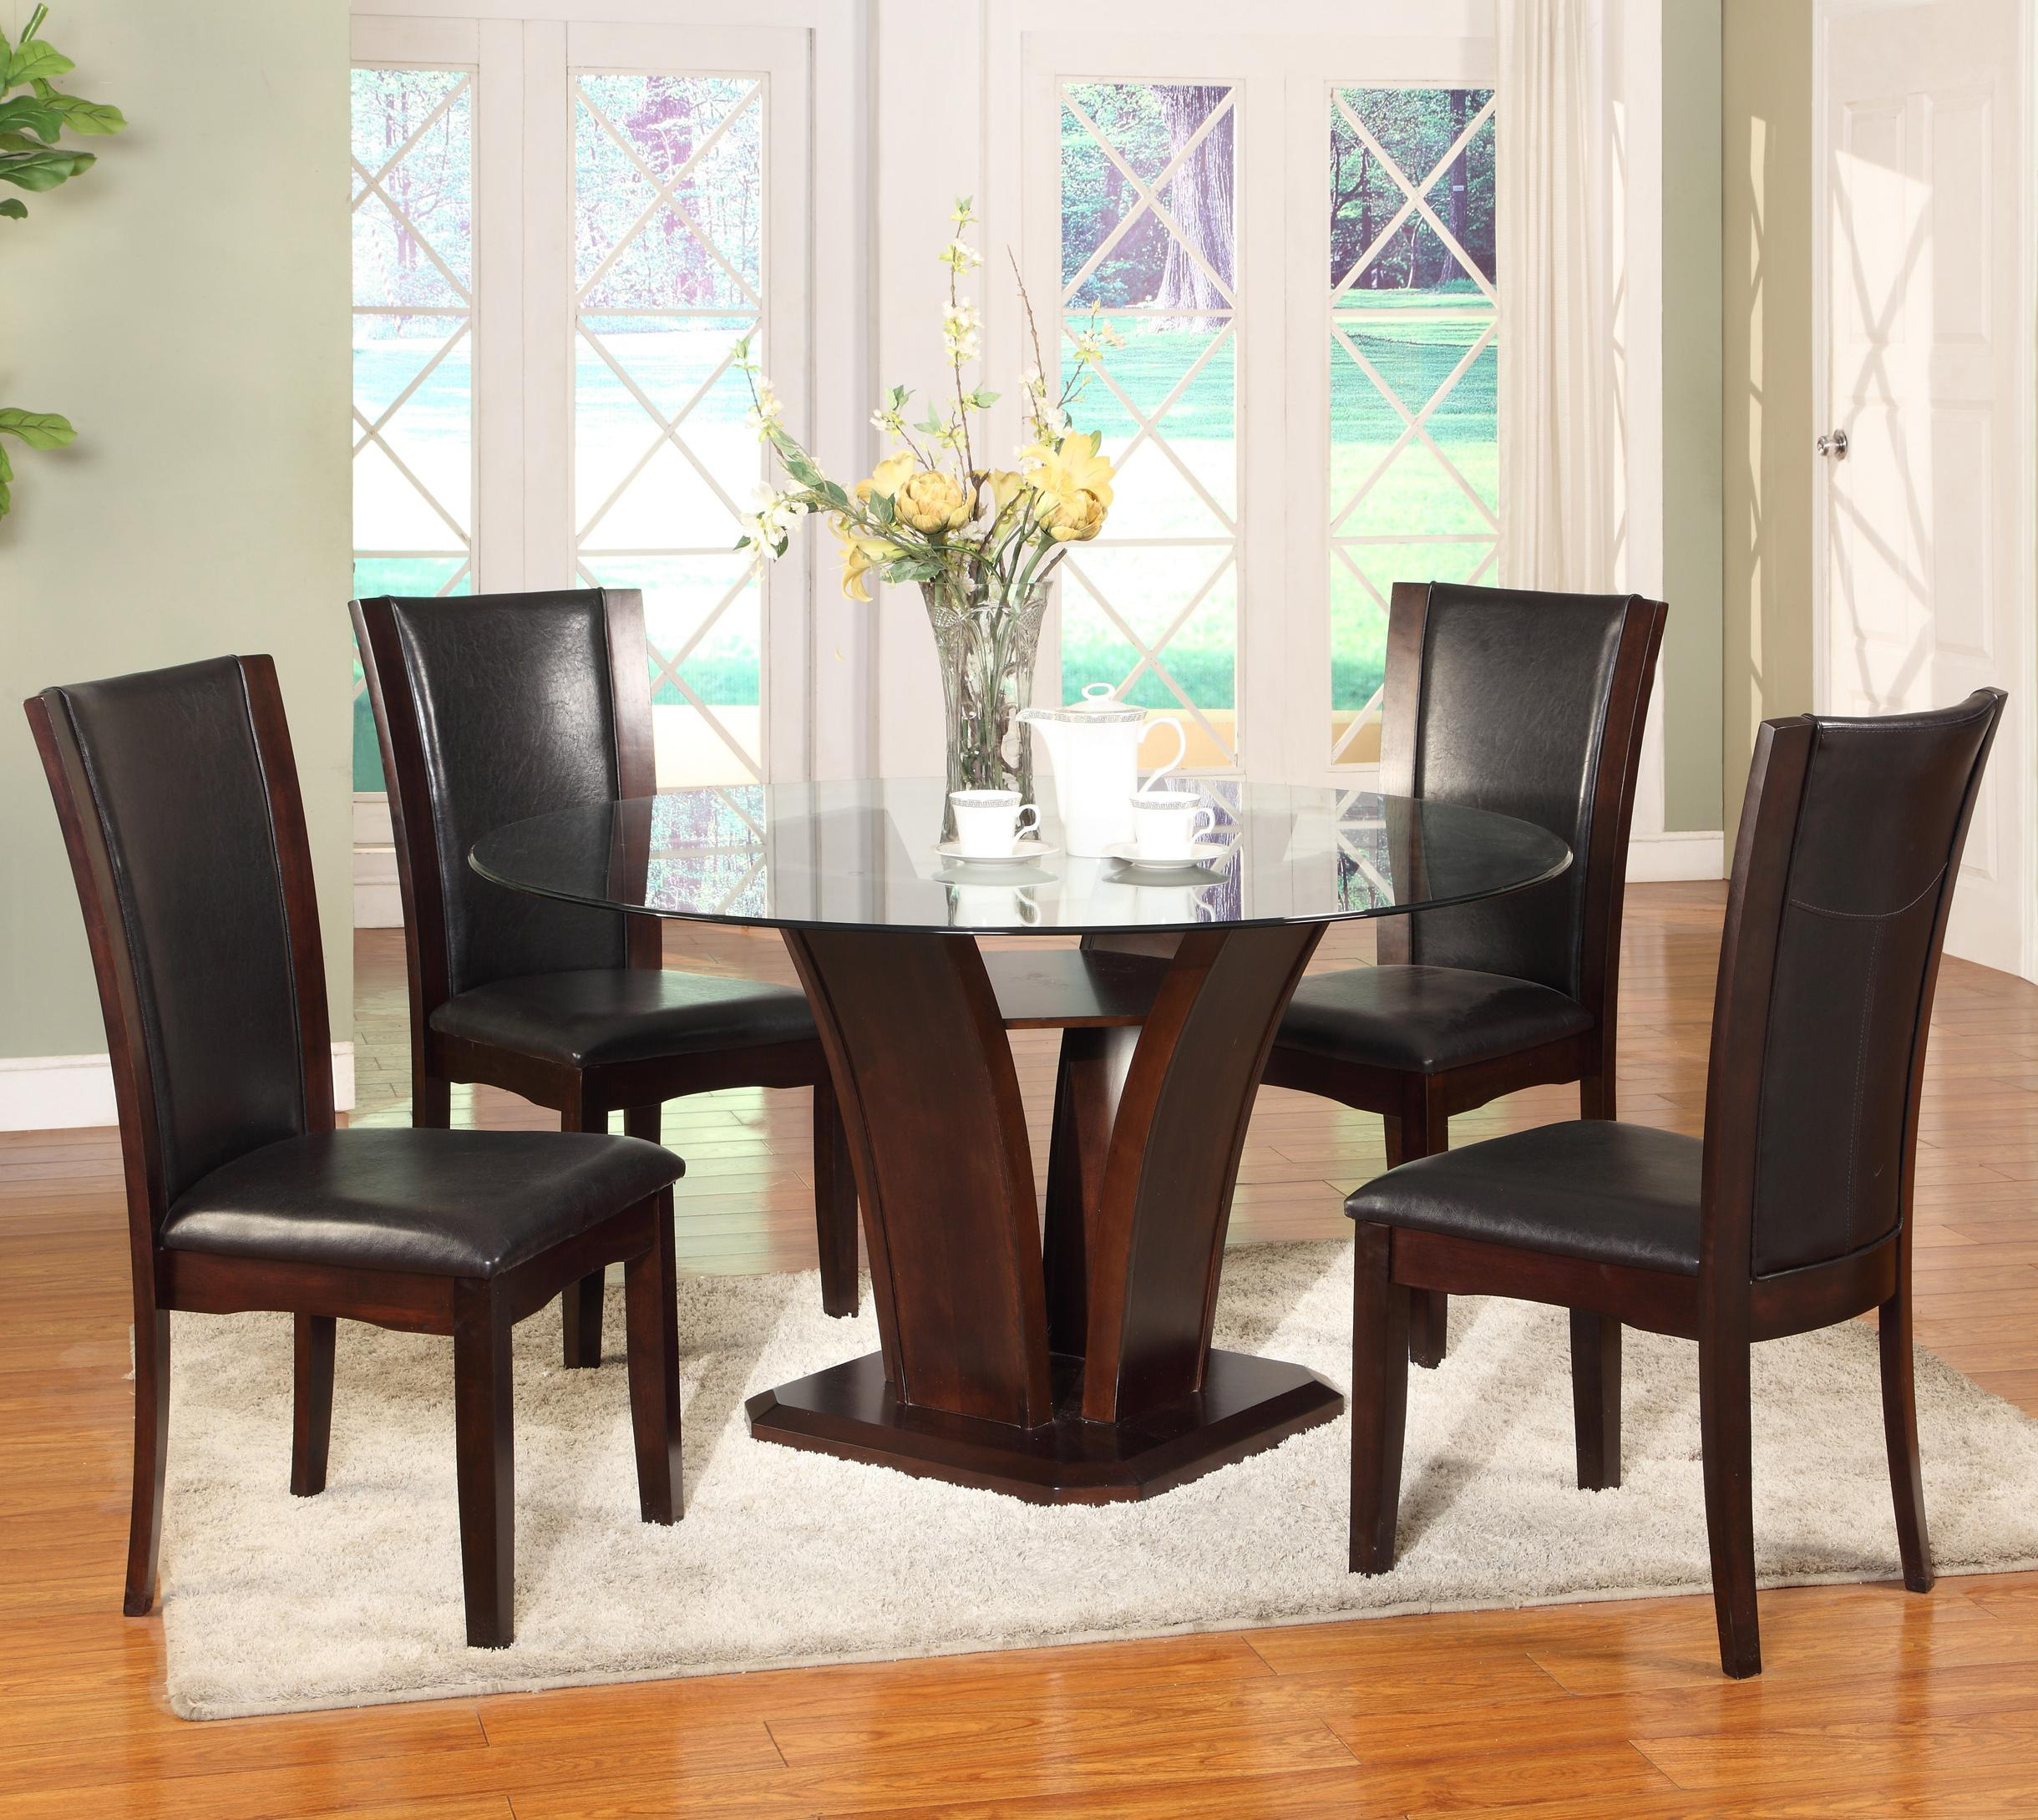 Crown Mark Camelia Espresso 5 Piece Table and Chair Set - Item Number: 1210T-54-BASE+LEG+GL-54+4x1210S-ESP